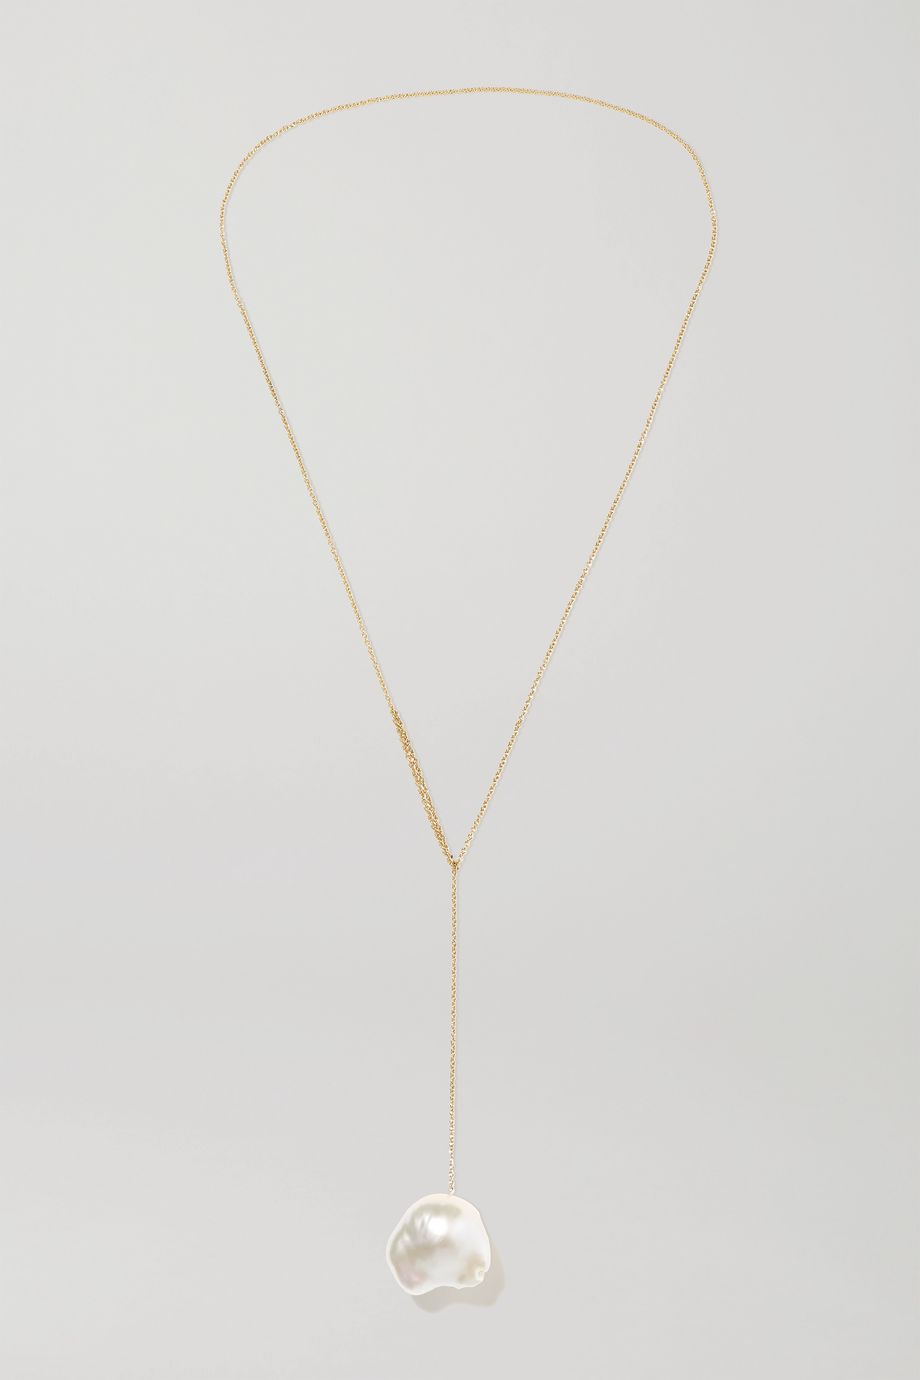 Sophie Bille Brahe Sirene 14-karat gold pearl necklace